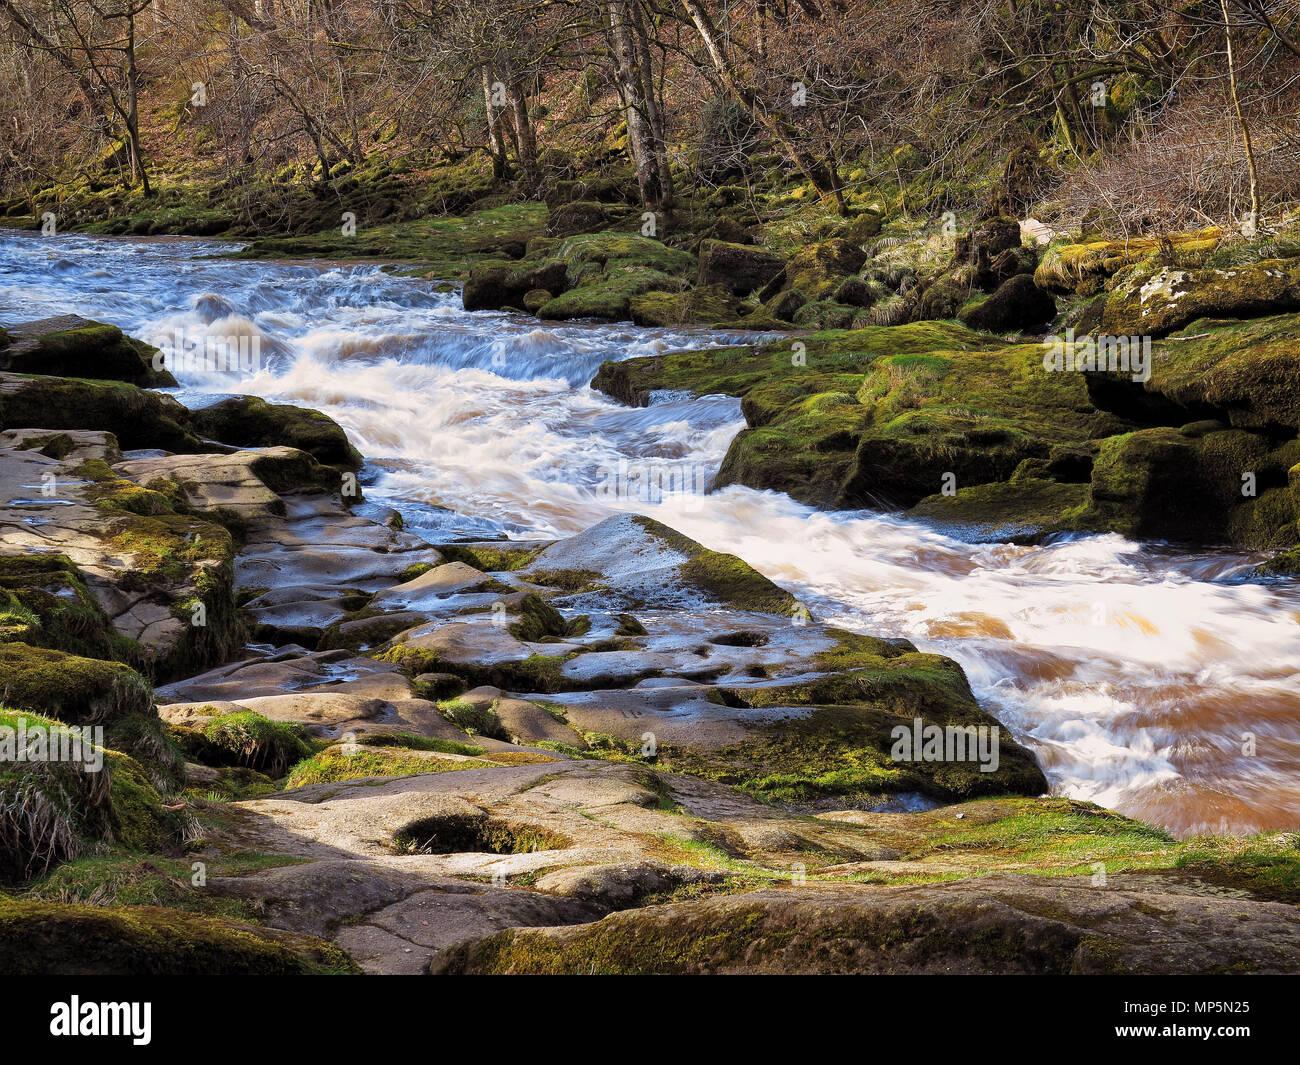 On the banks of The Strid, near Bolton Abbey, Yorkshire Dales - Stock Image